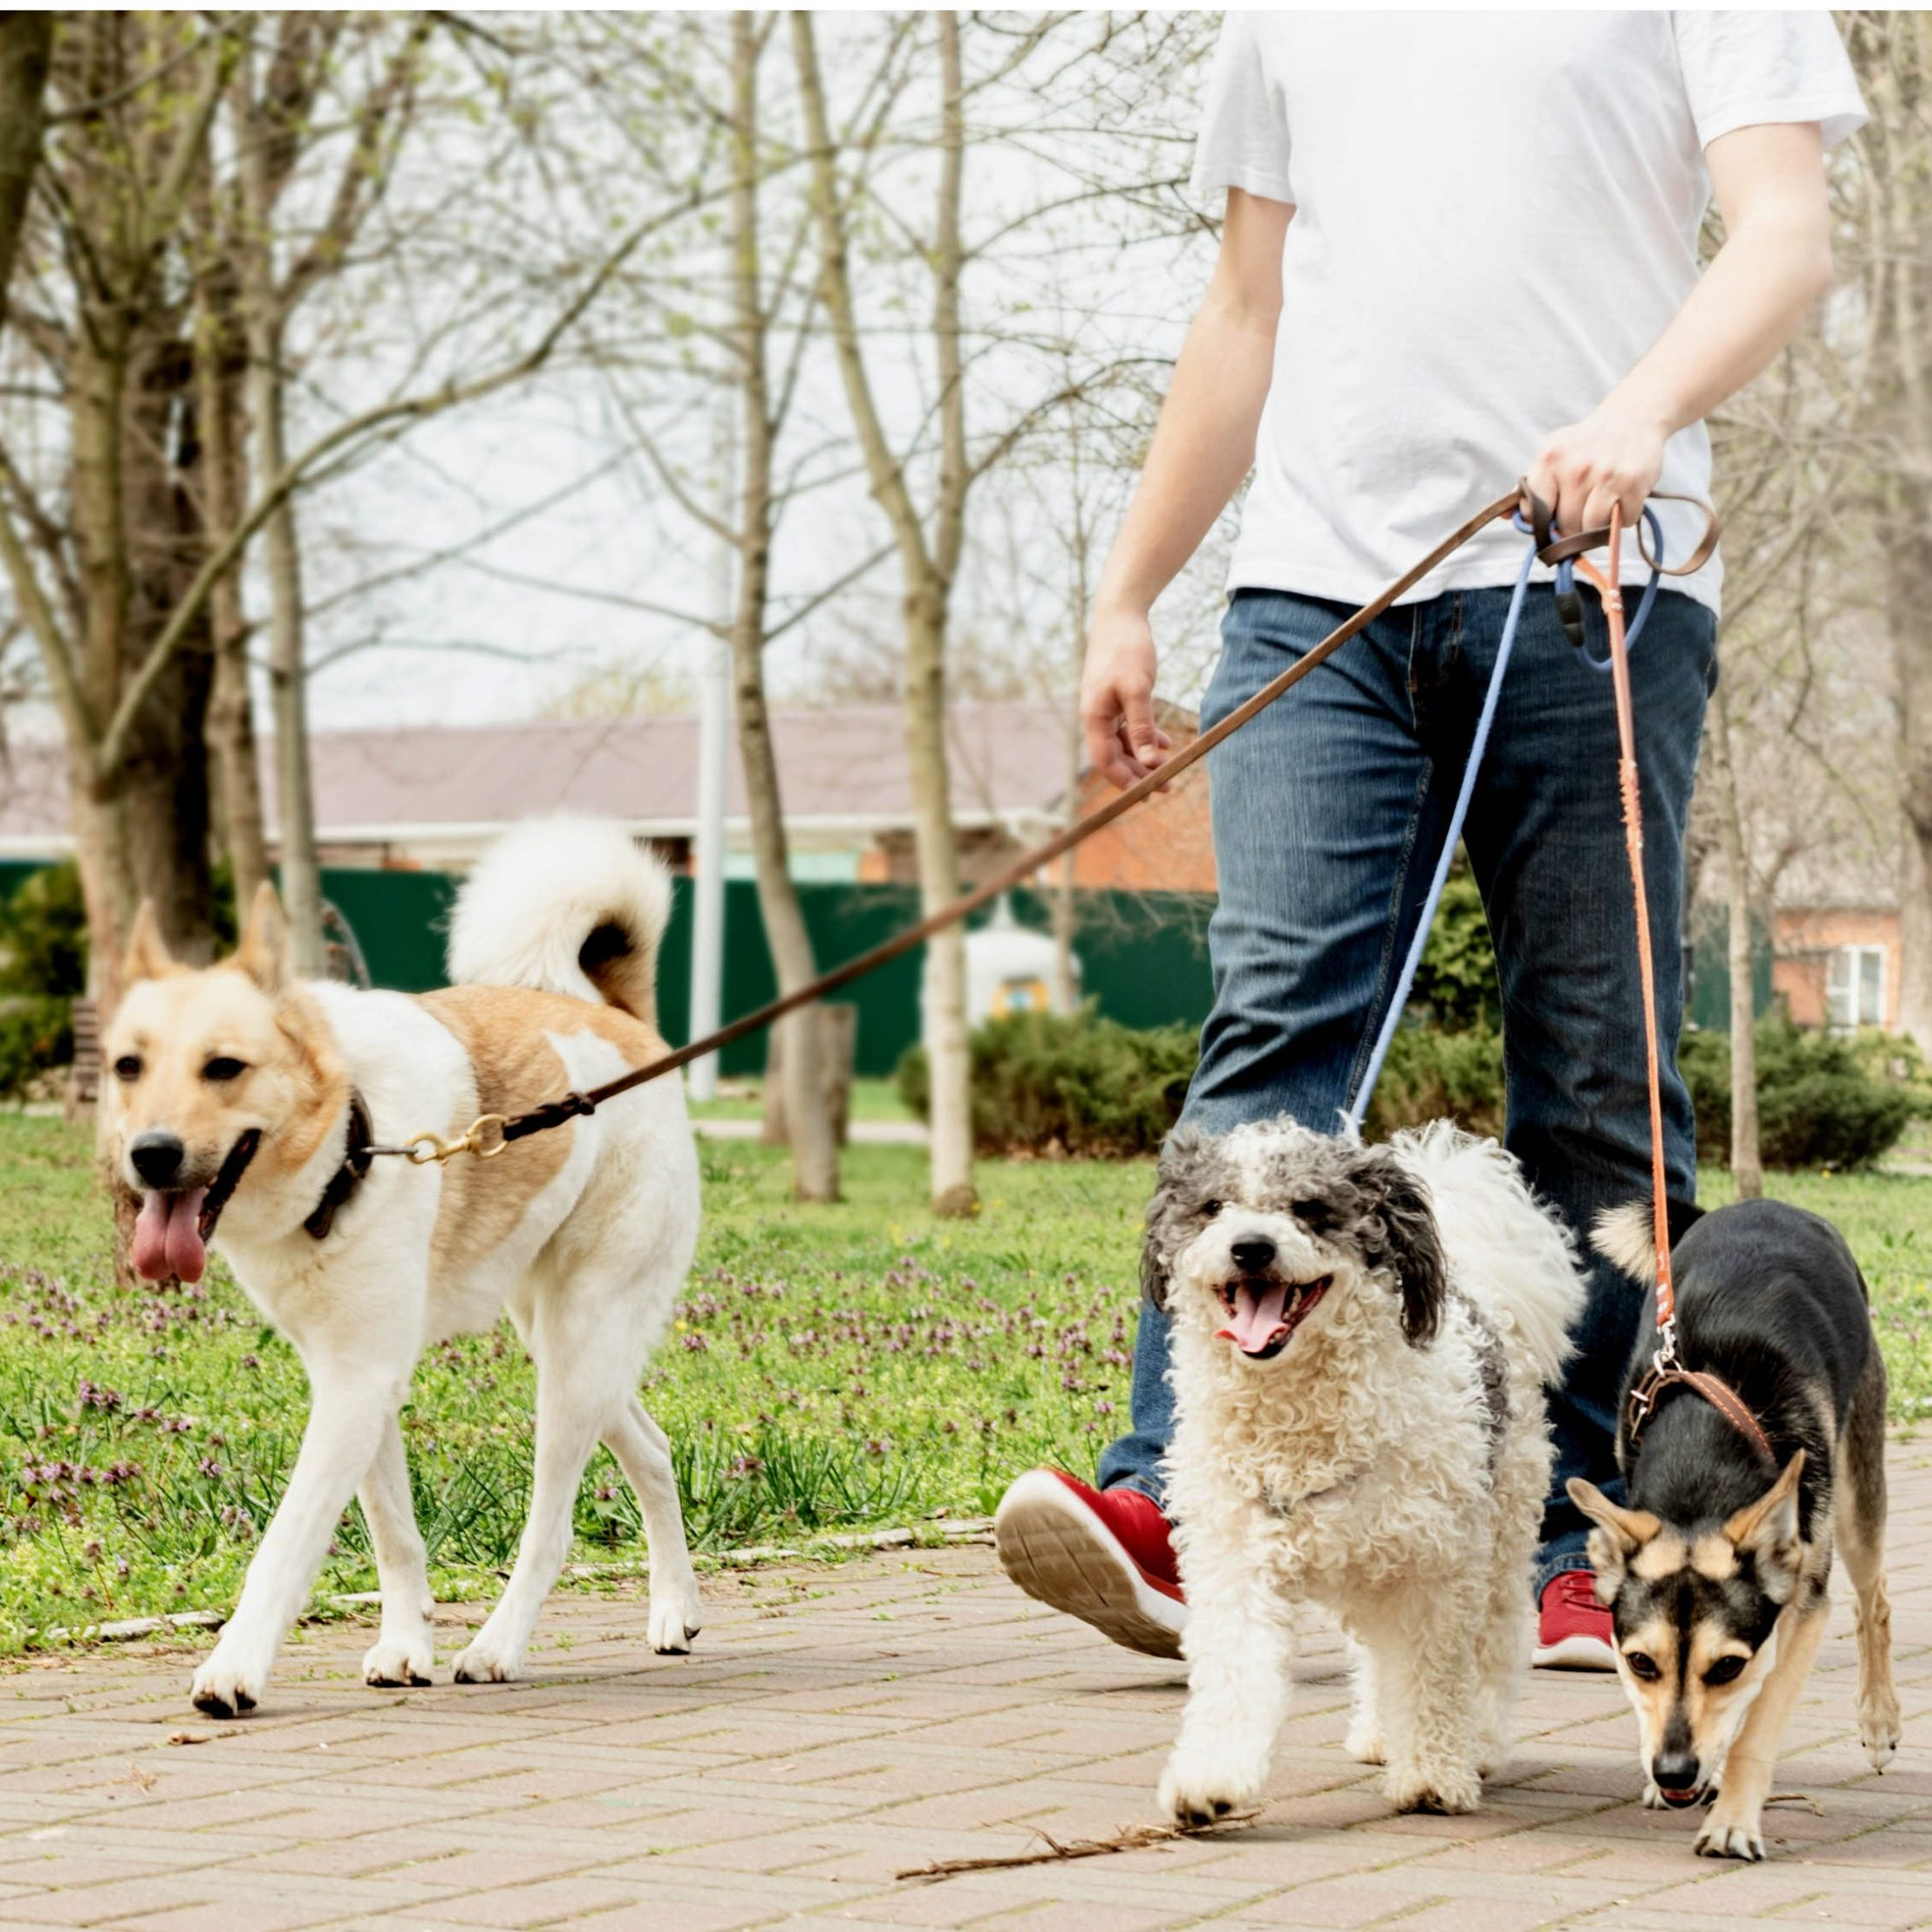 Professional male dog walker walking a pack of dogs on park trail